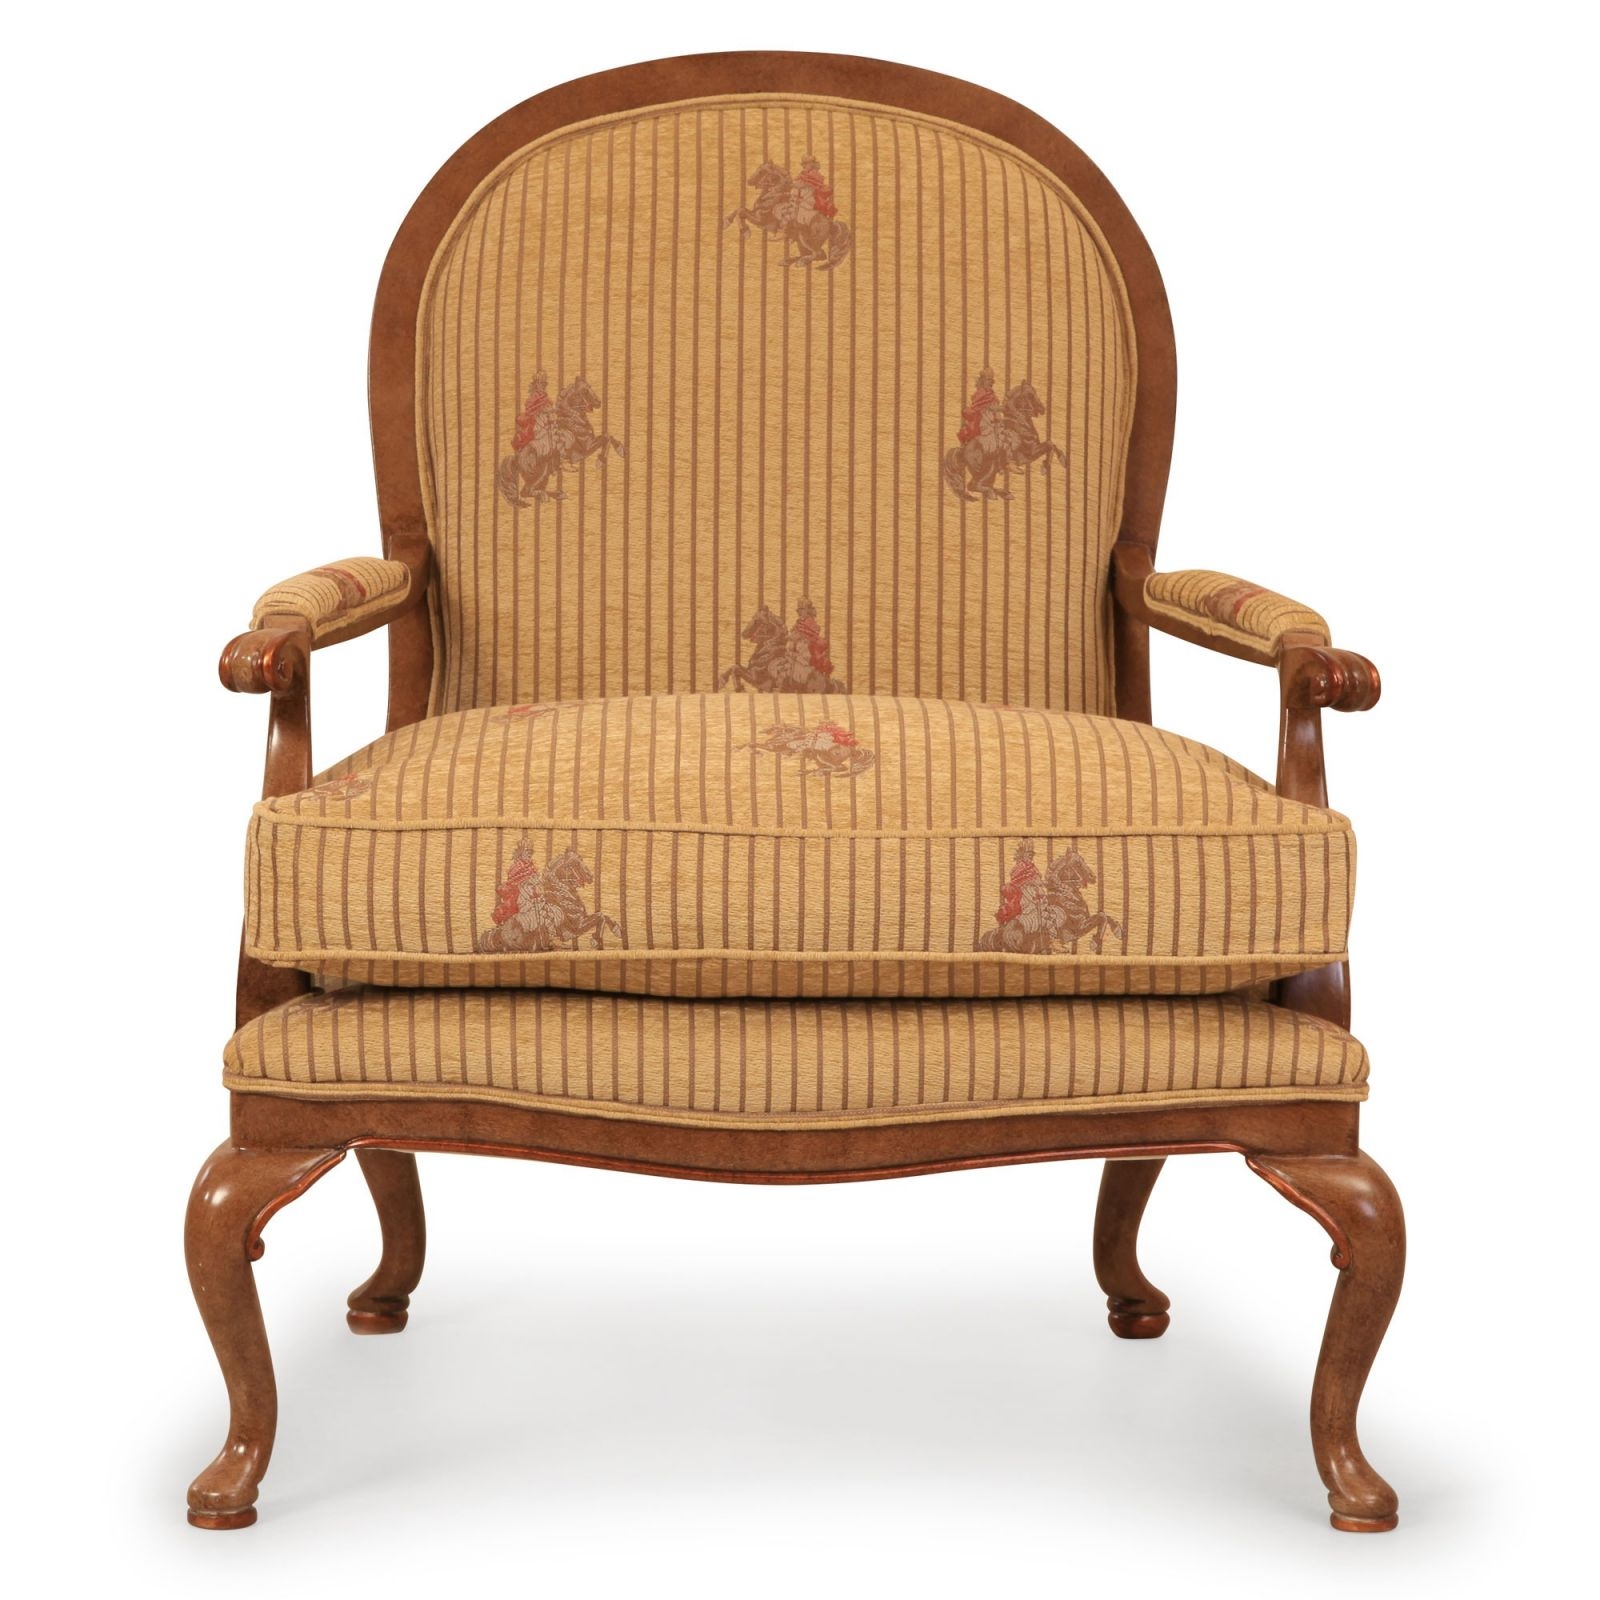 Sicily chair in pale gold striped chenille